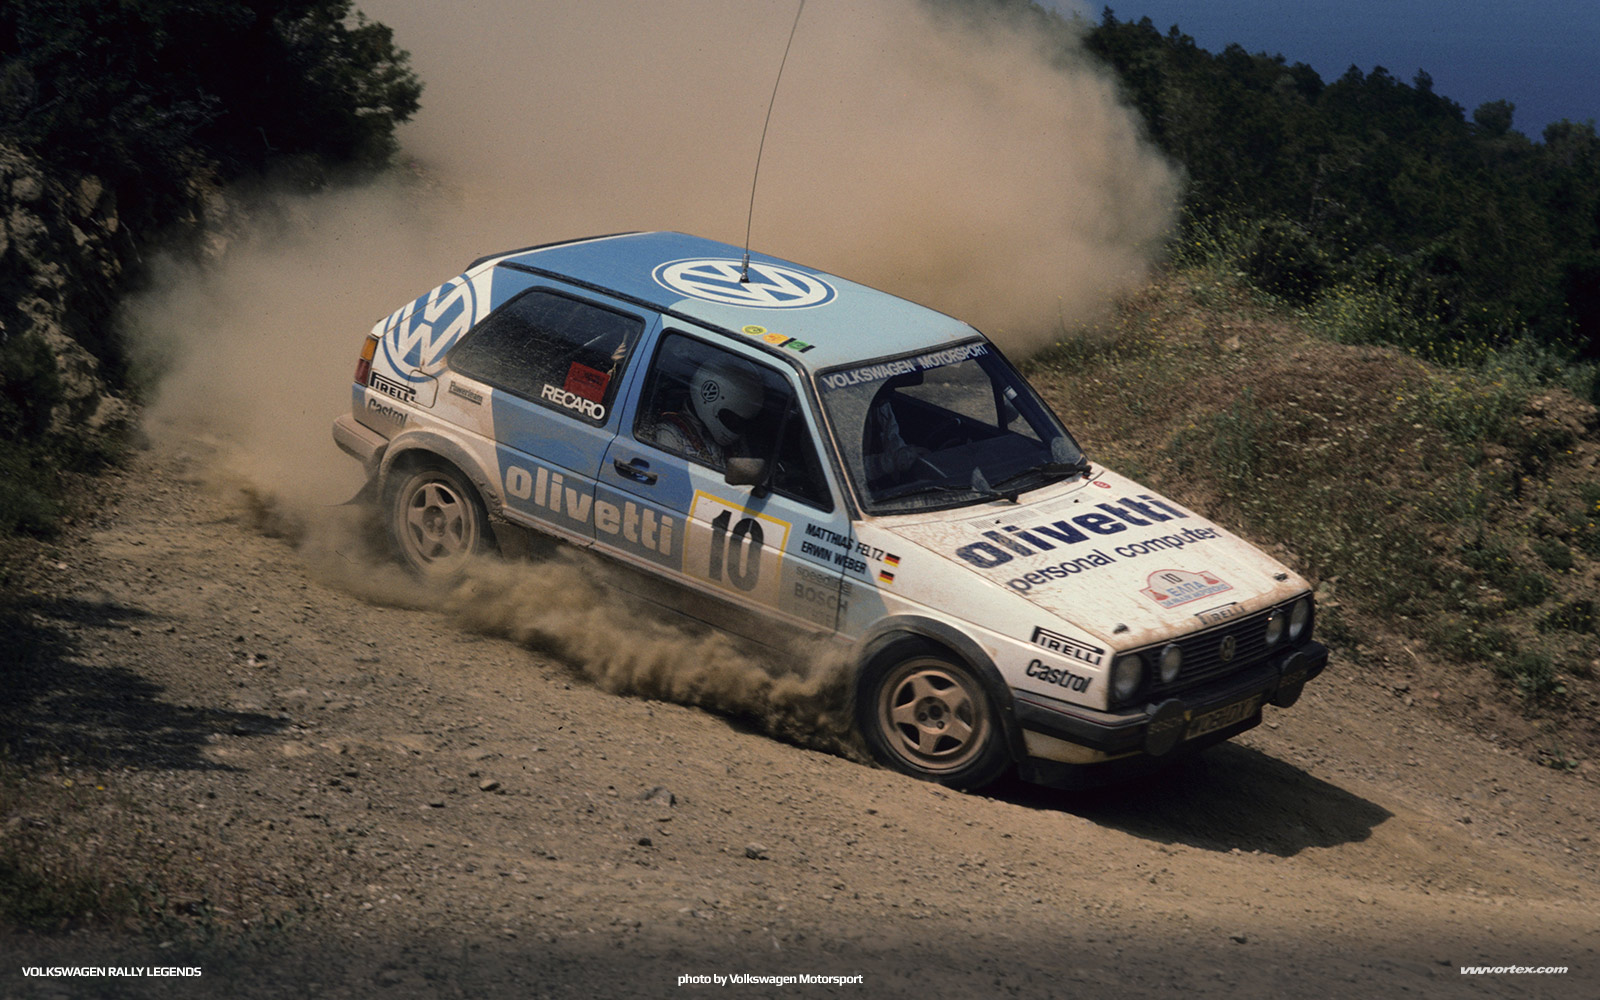 volkswagen-rally-legends-382